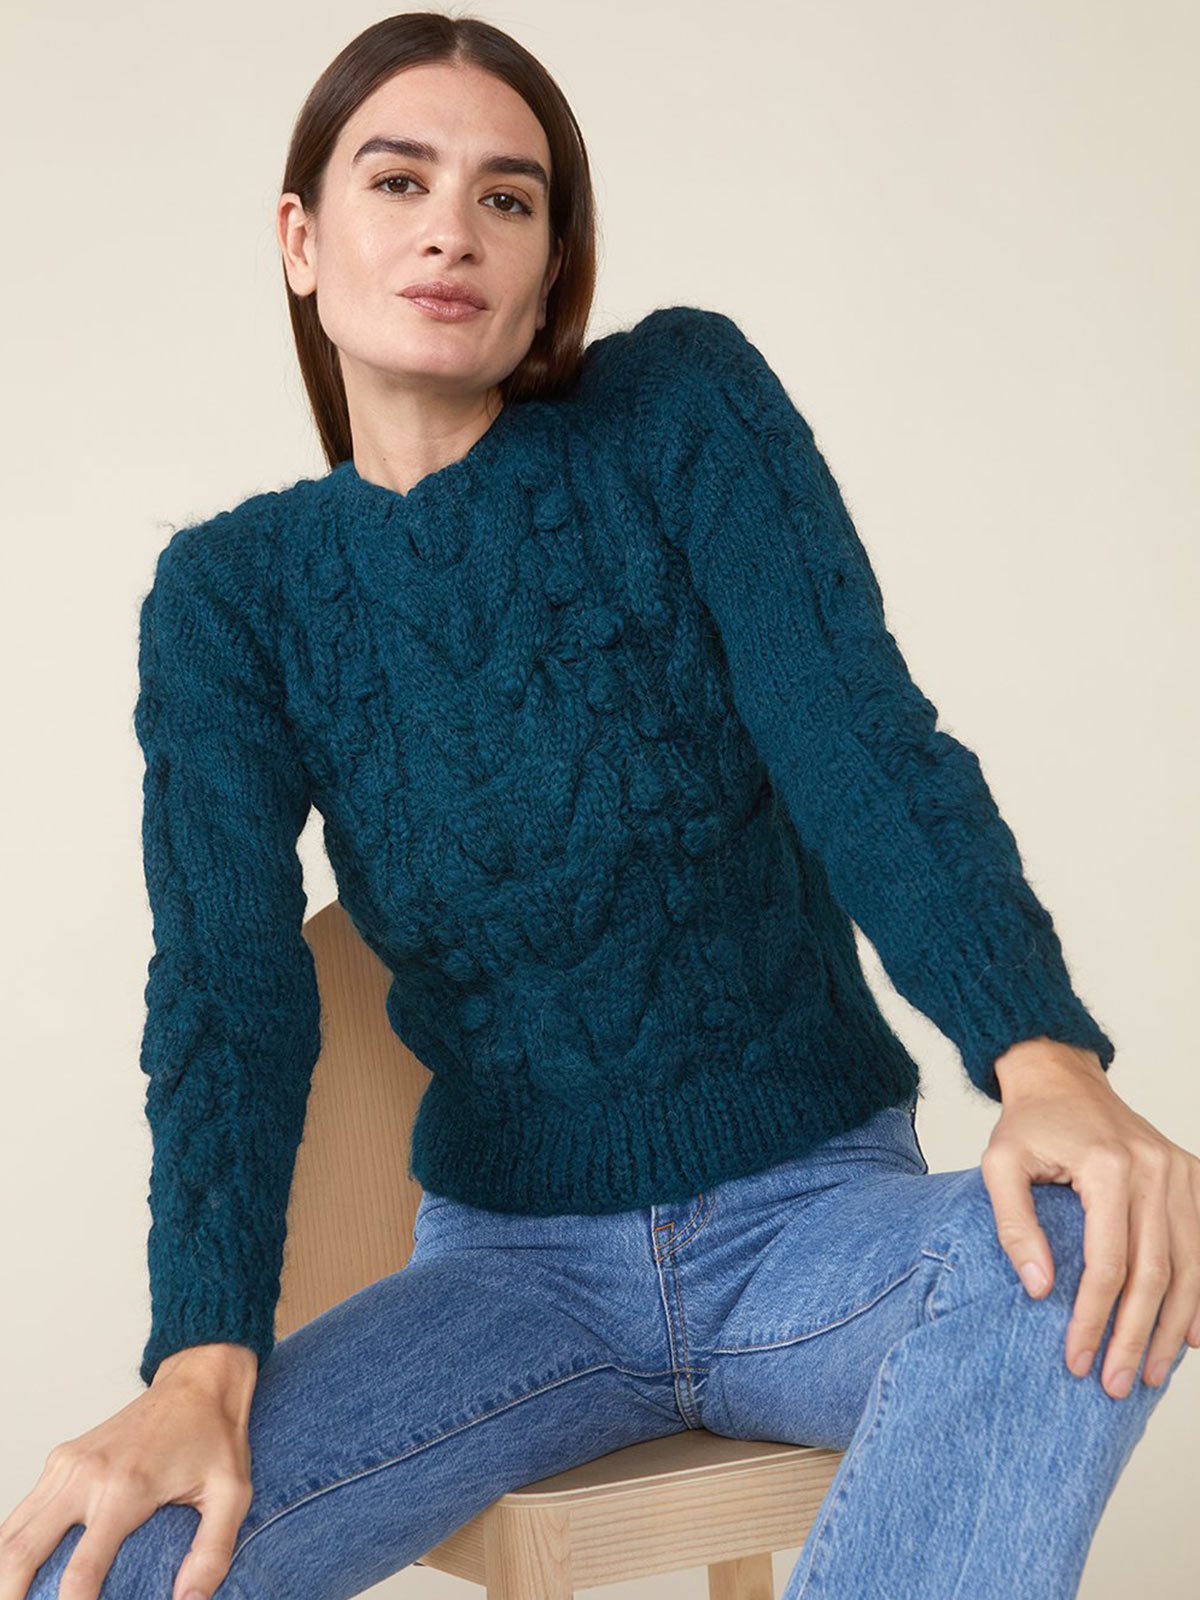 Ossie Sweater | Teal Ossie Sweater | Teal